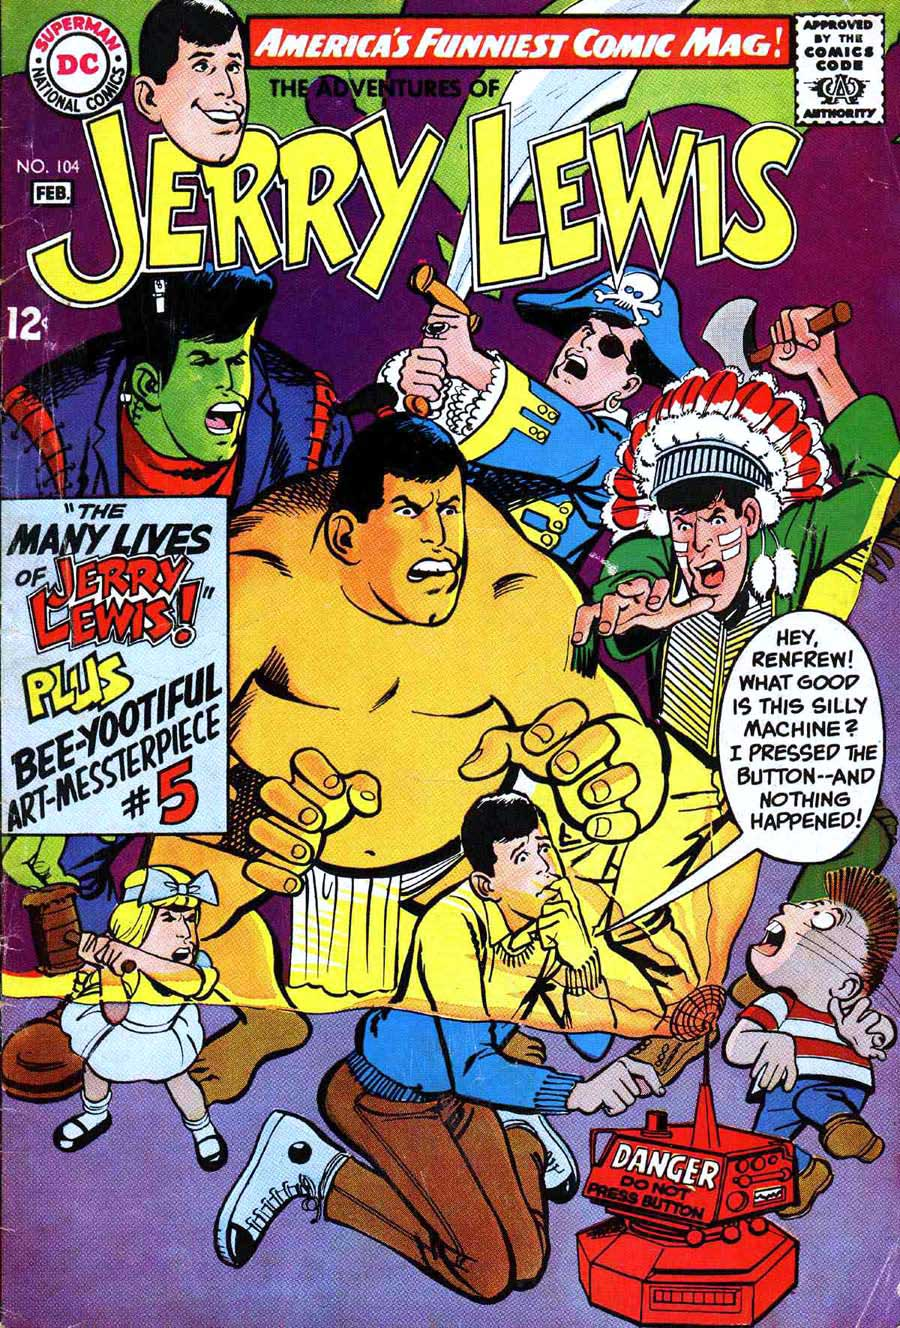 Adventures of Jerry Lewis v1 #104 - Neal Adams dc 1960s comic book cover art